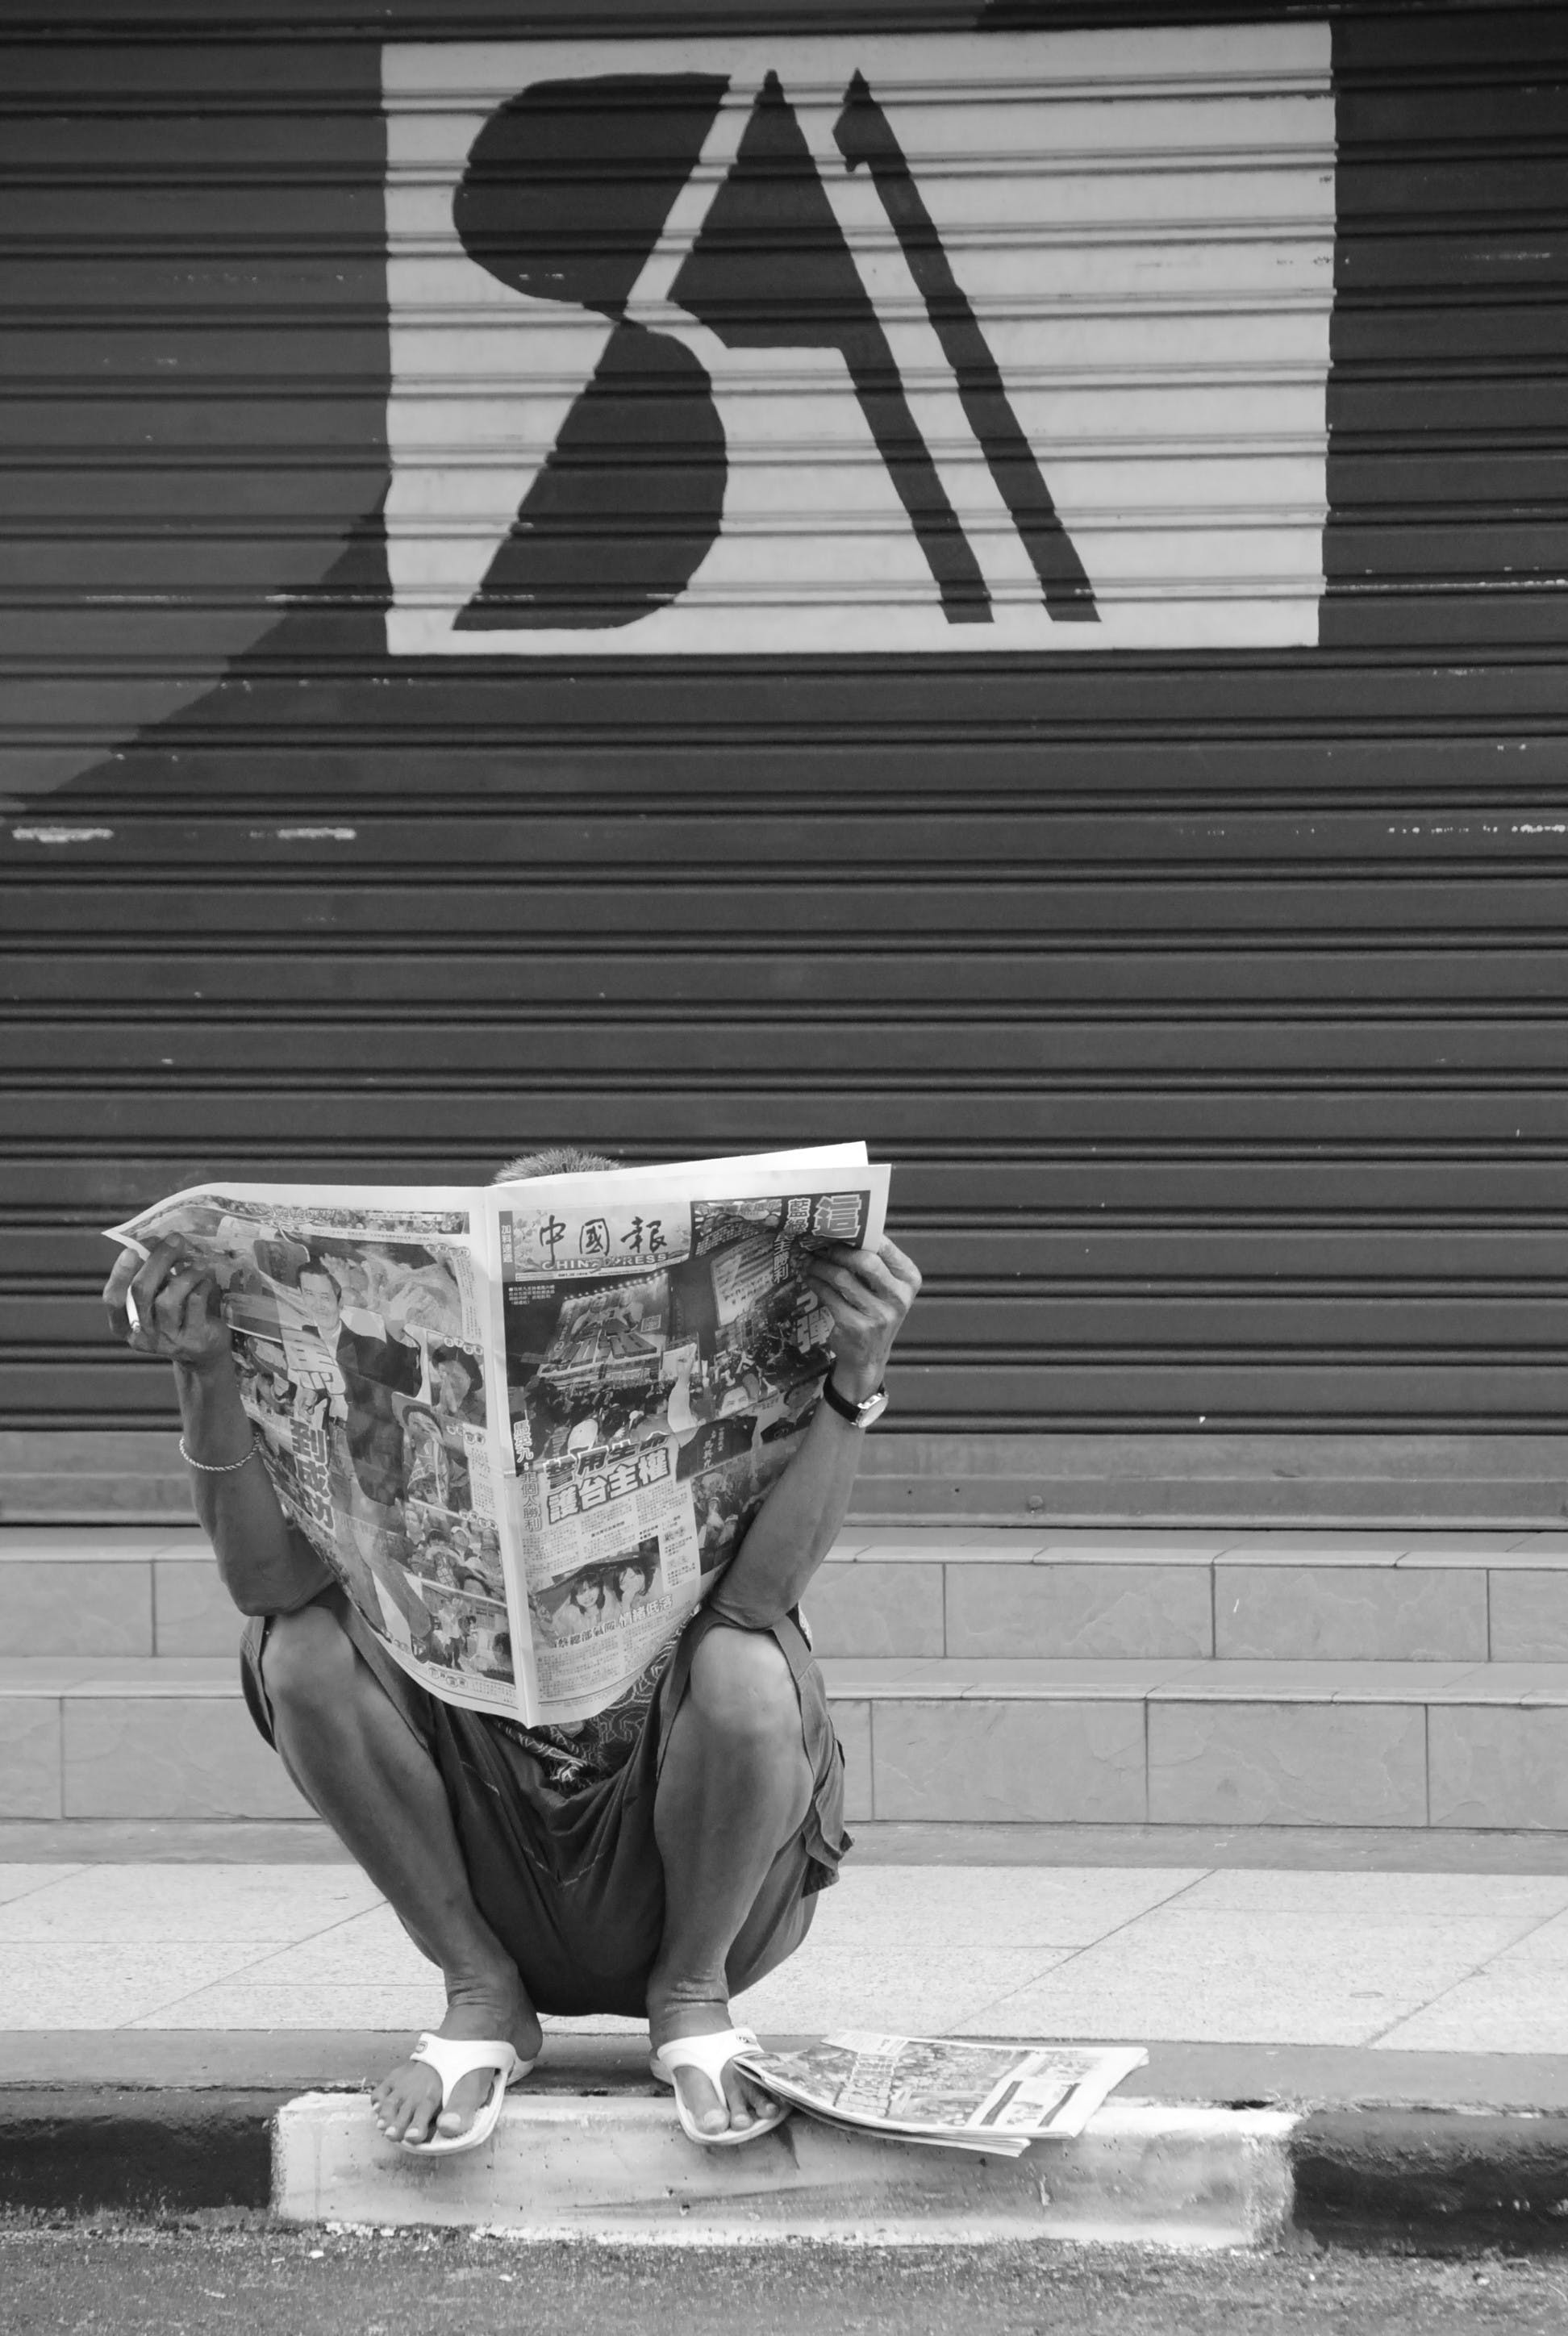 Person Sitting on Side Walk Reading Newspaper